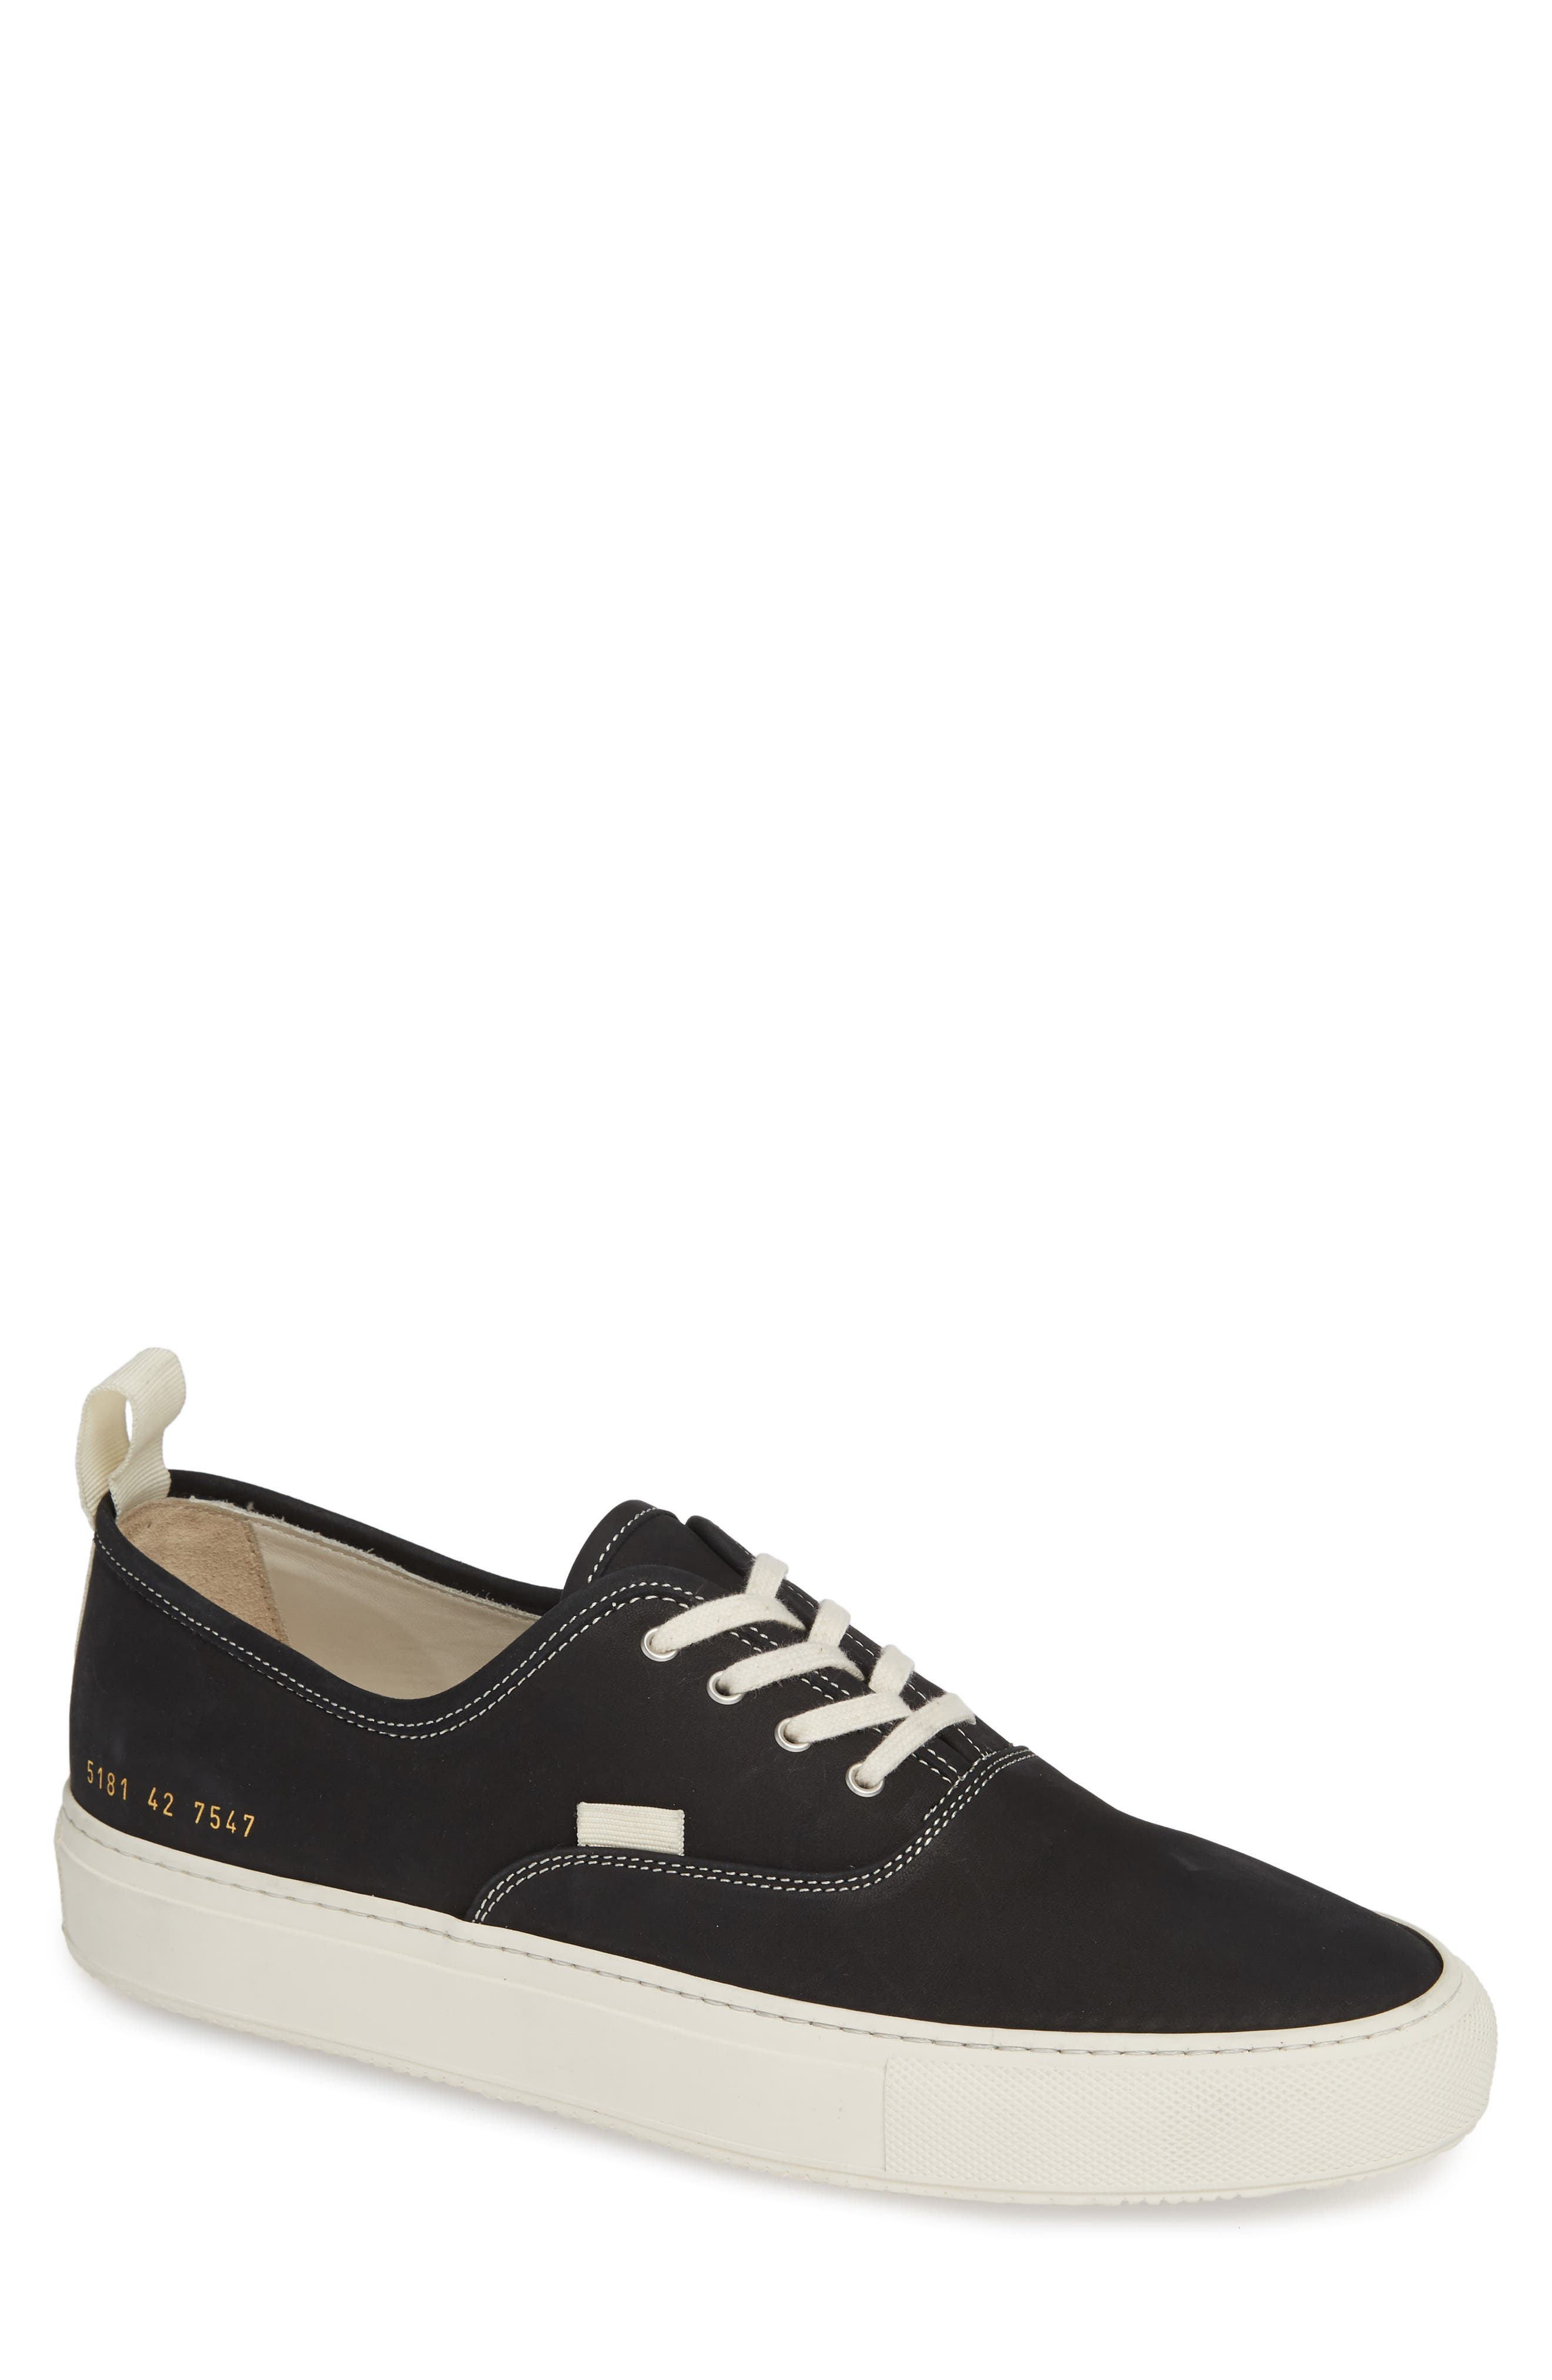 COMMON PROJECTS Four-Hole Sneaker, Main, color, BLACK